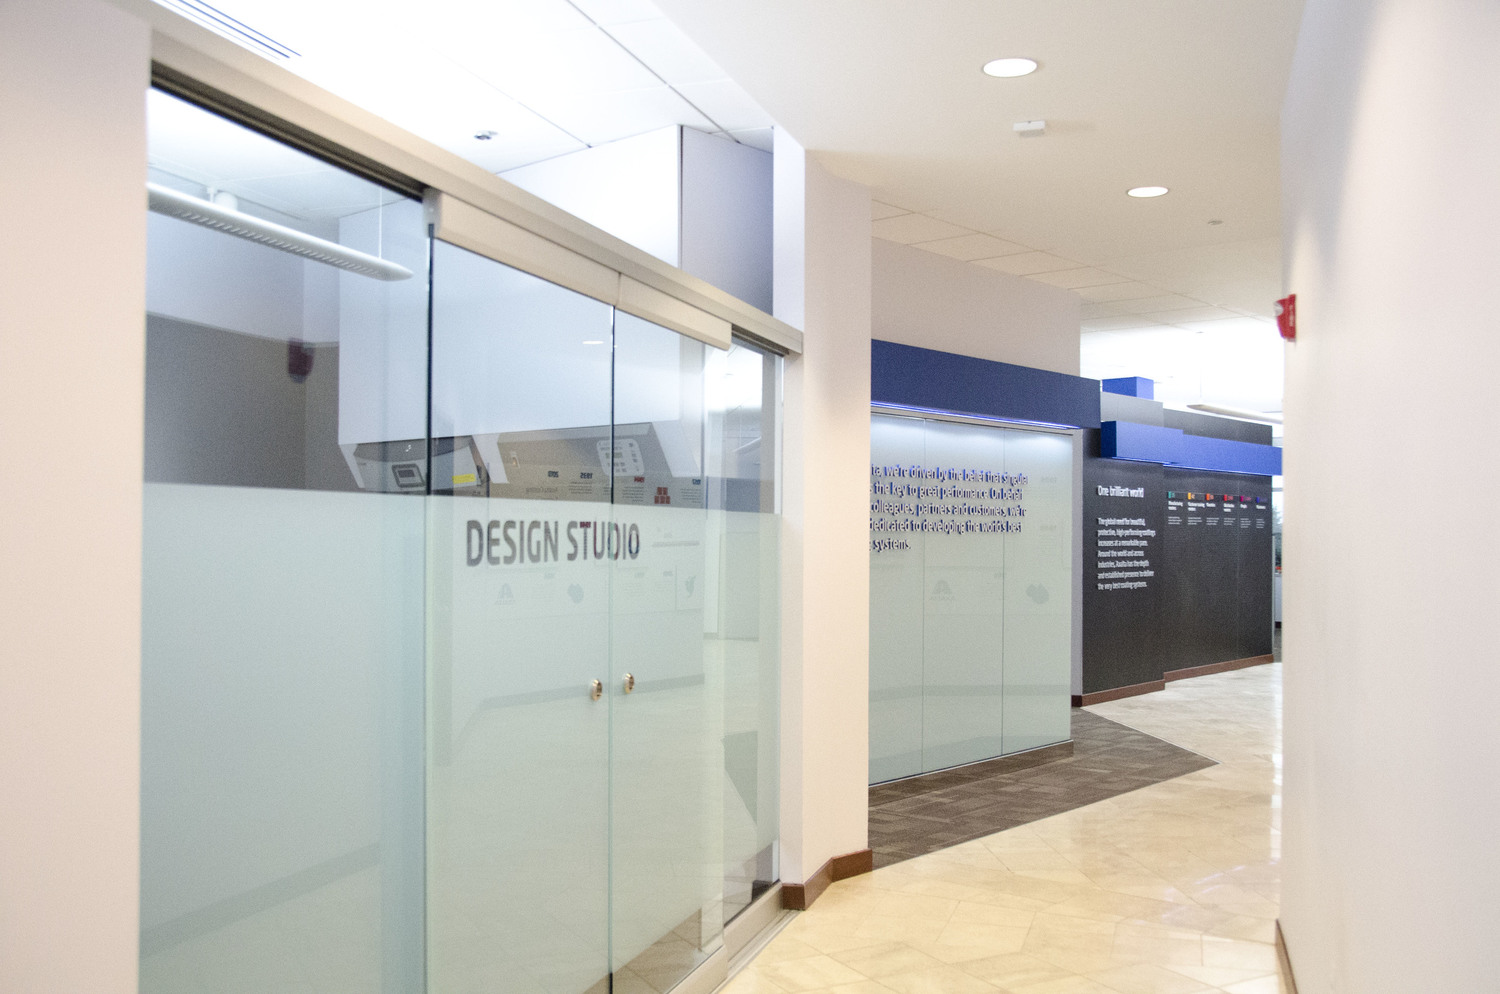 axalta_interior_design_studio_1.jpg